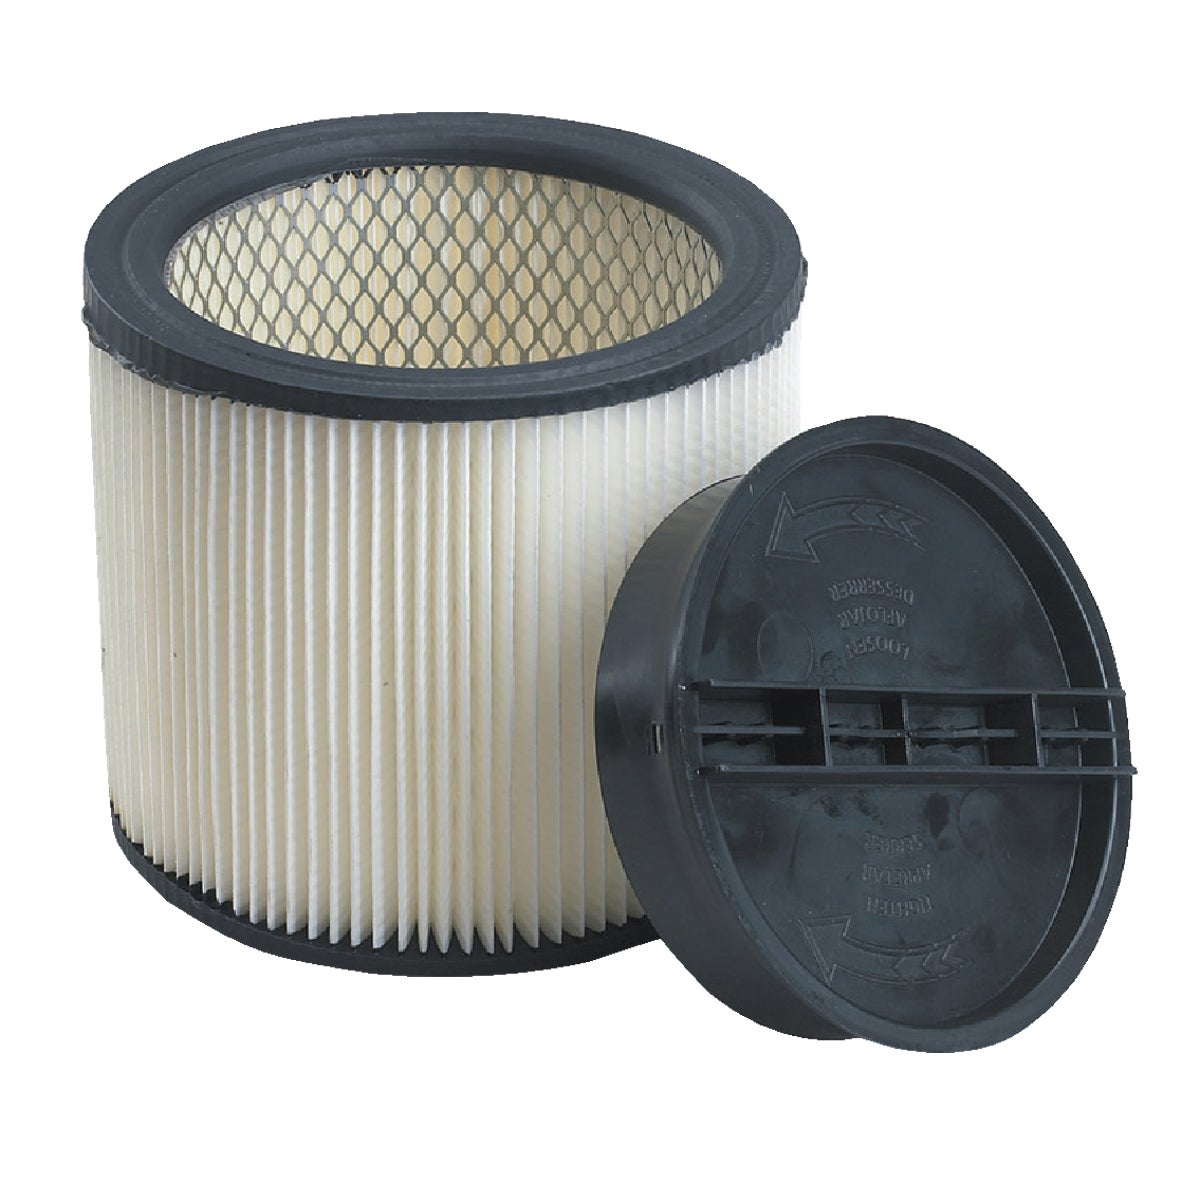 WET/DRY CARTRIDGE FILTER - 9030400 by Shop Vac Corp